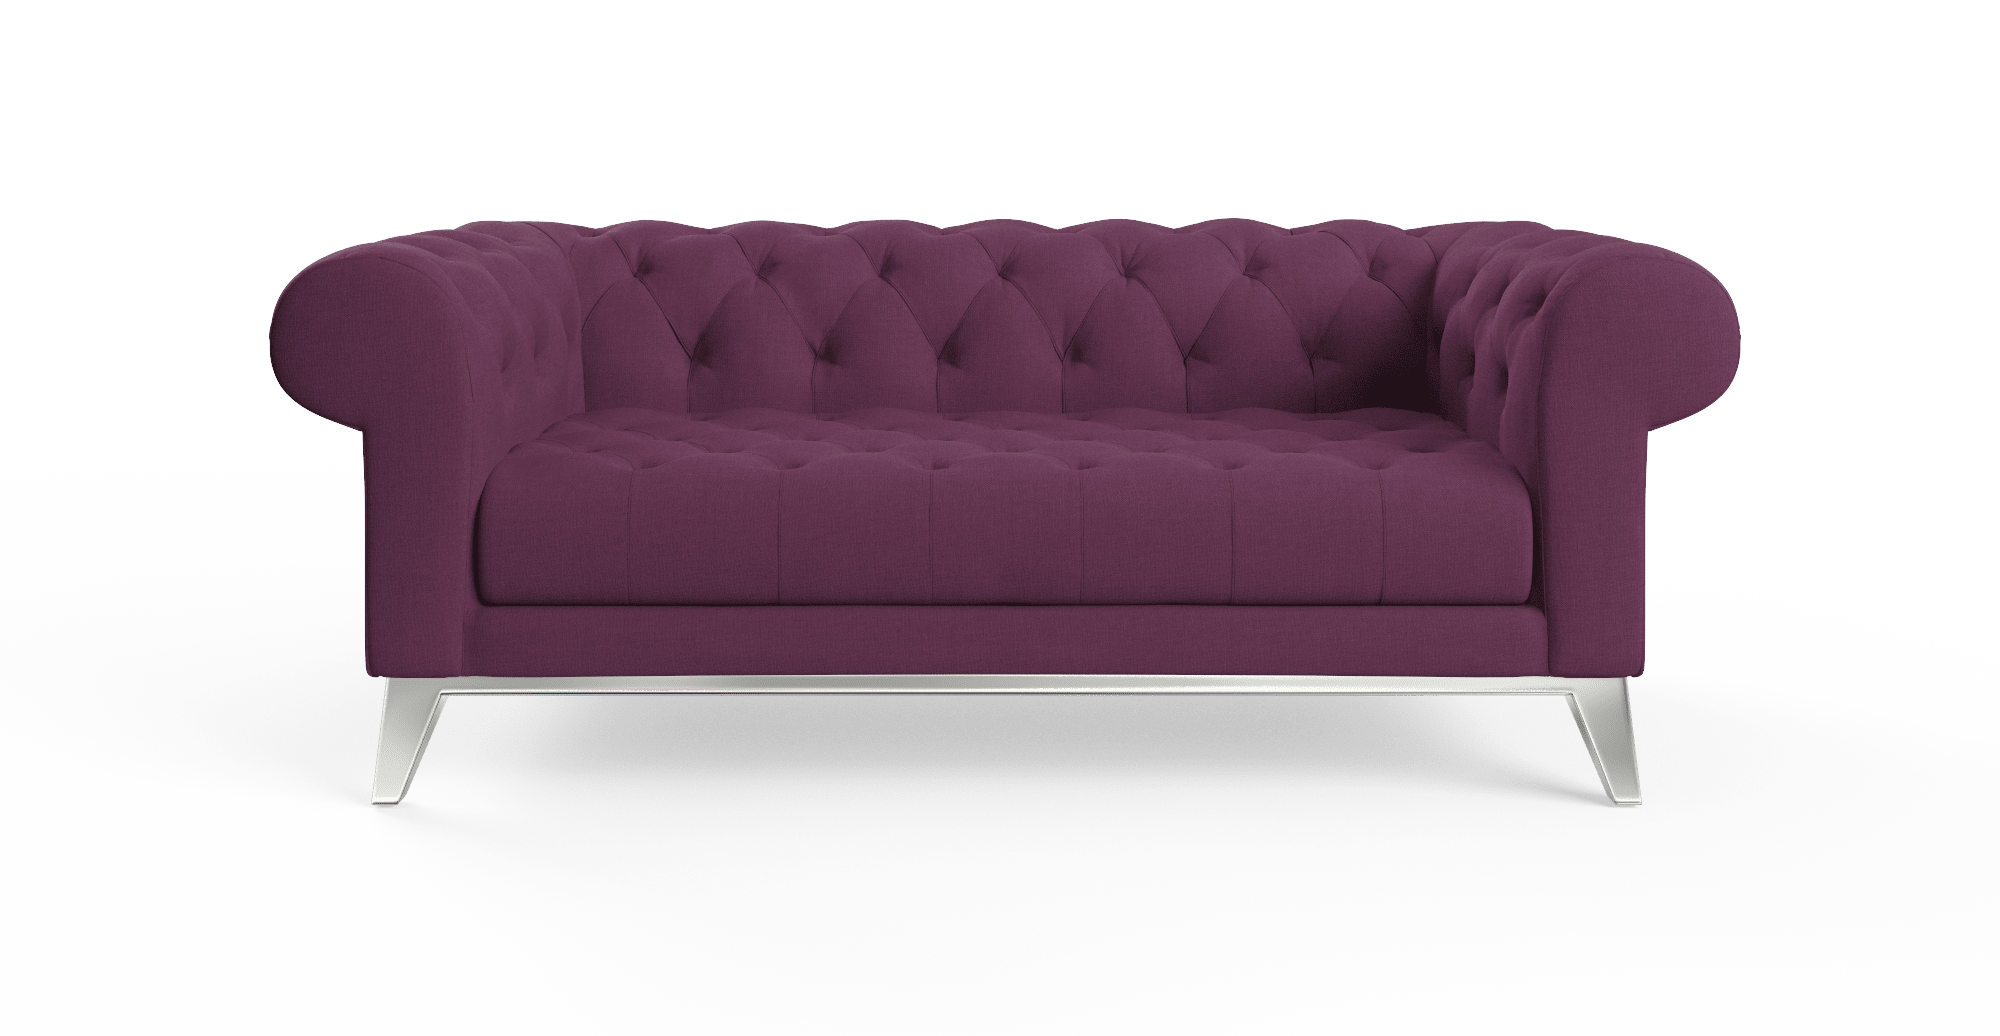 Purple couch png. Buy cullen seater sofa